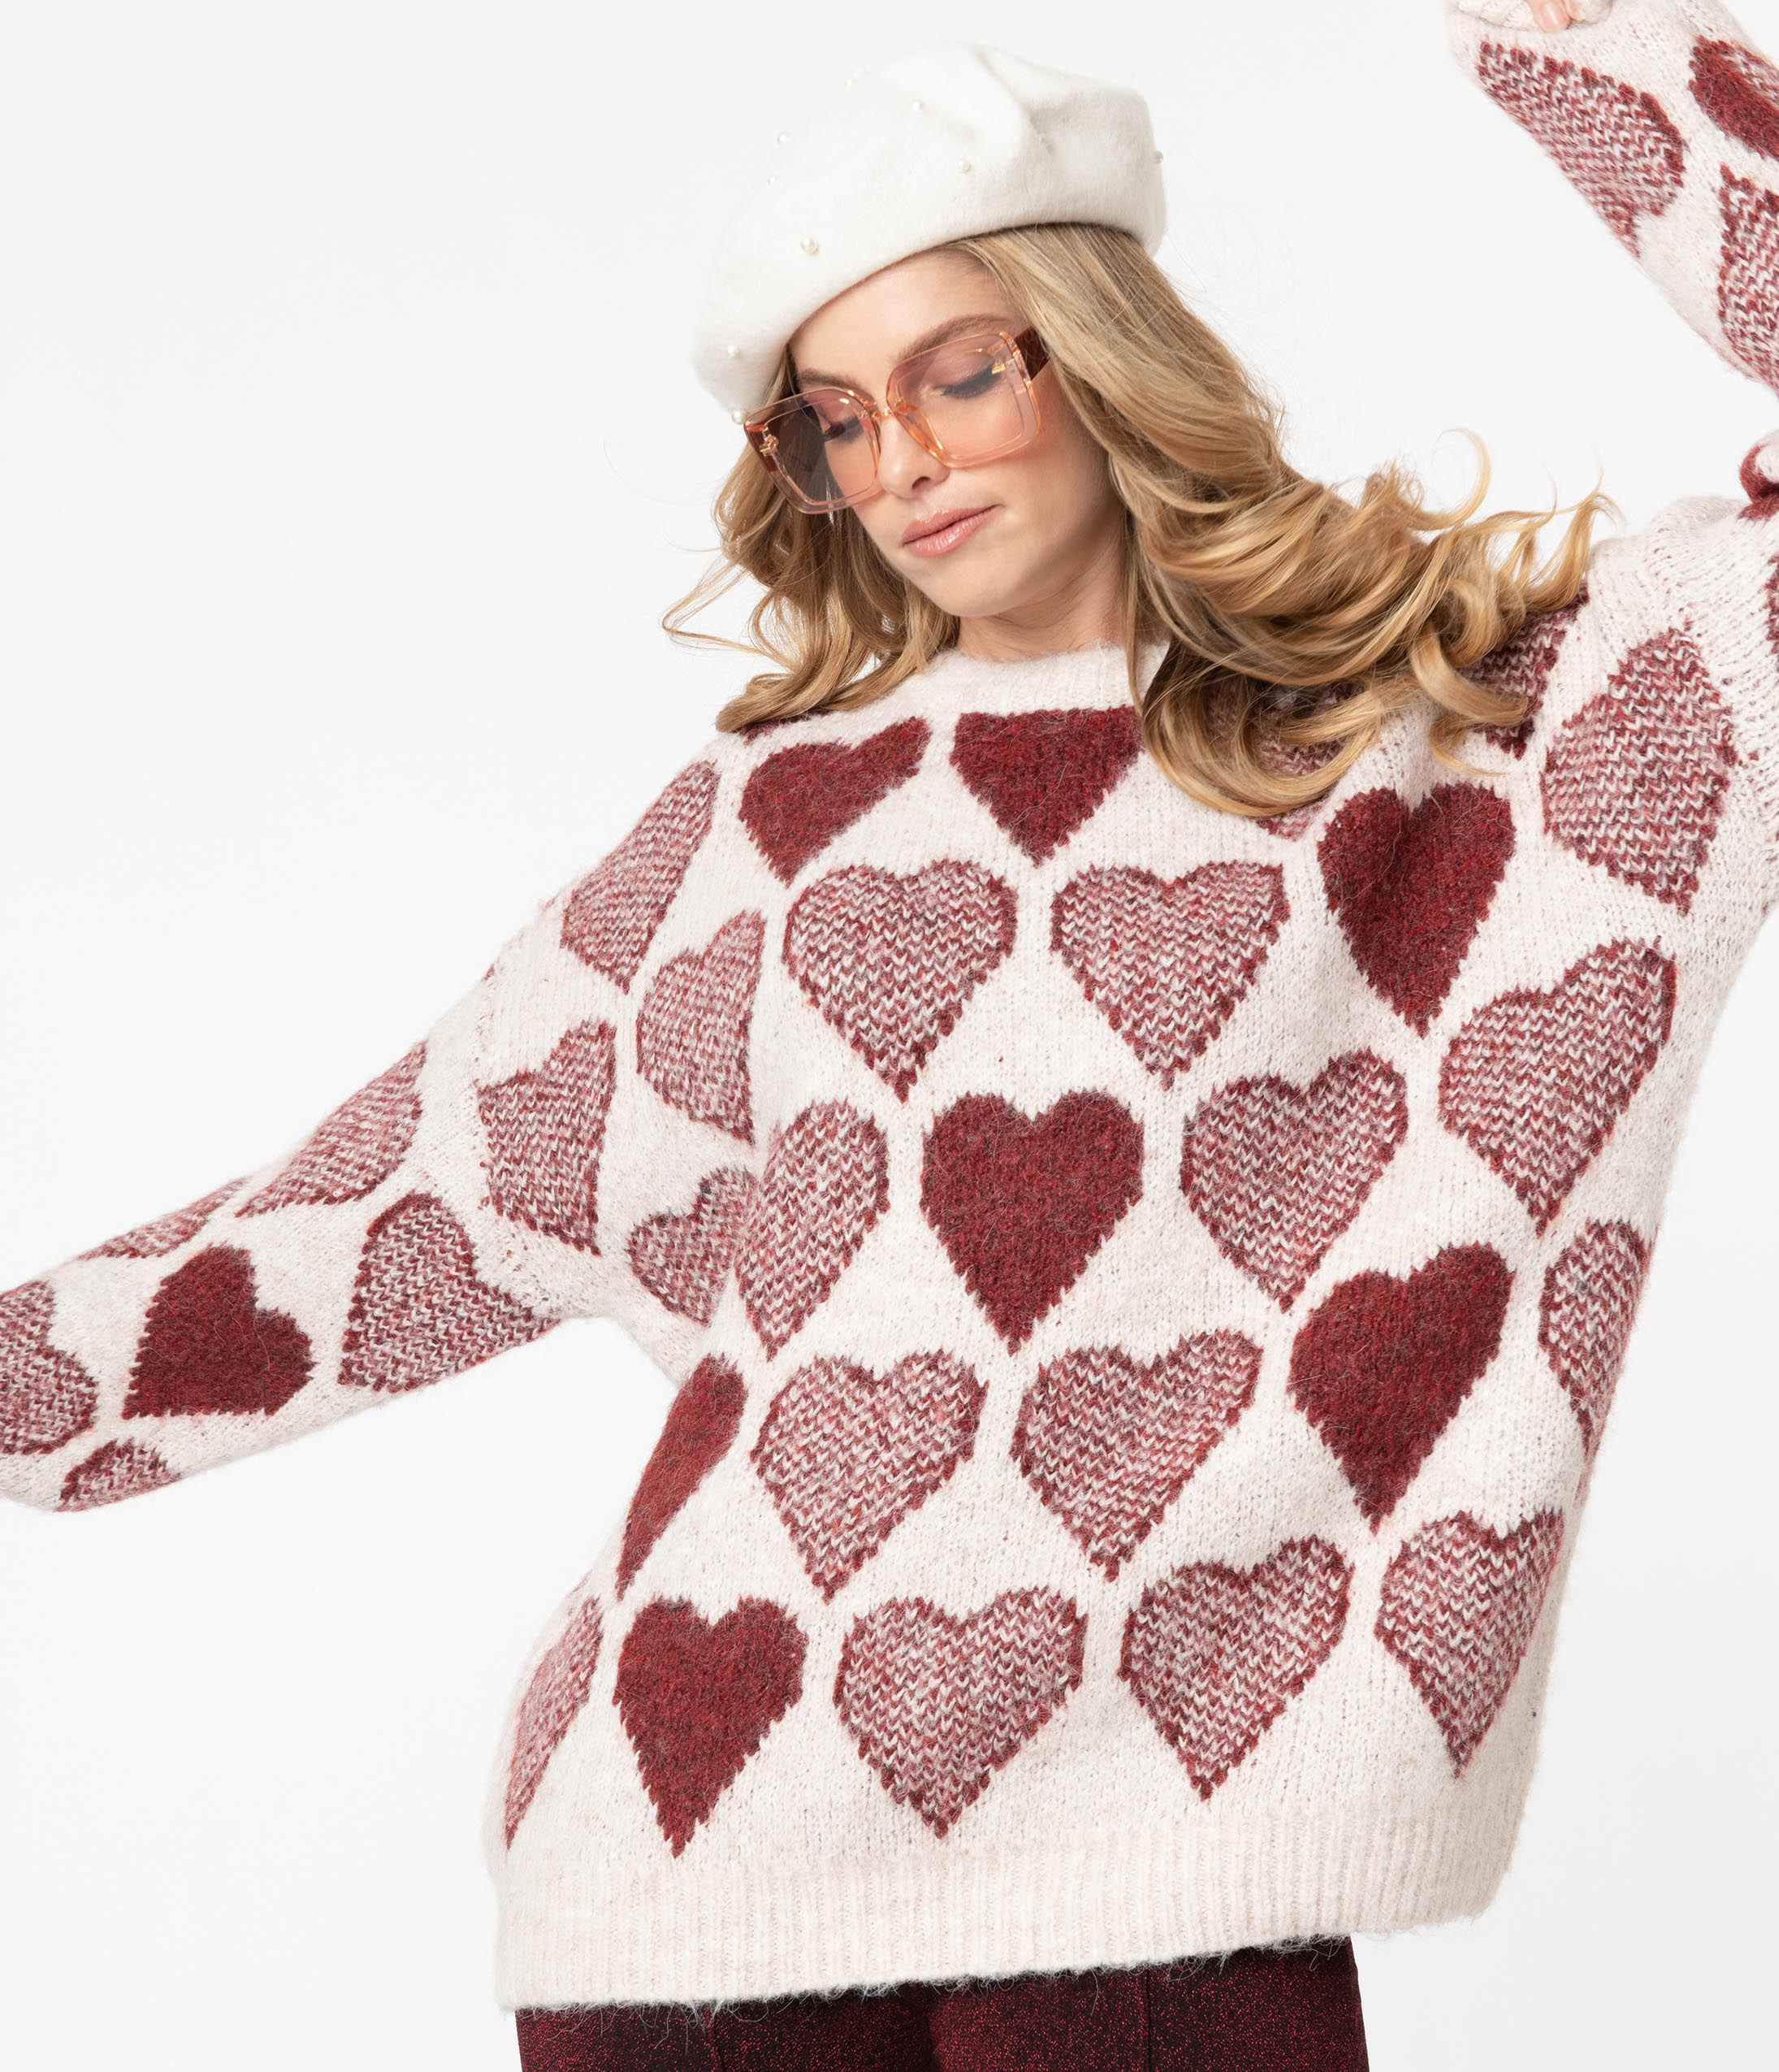 80s Sweatshirts and Sweaters Beige  Burgundy Heart Oversized Sweater $58.00 AT vintagedancer.com